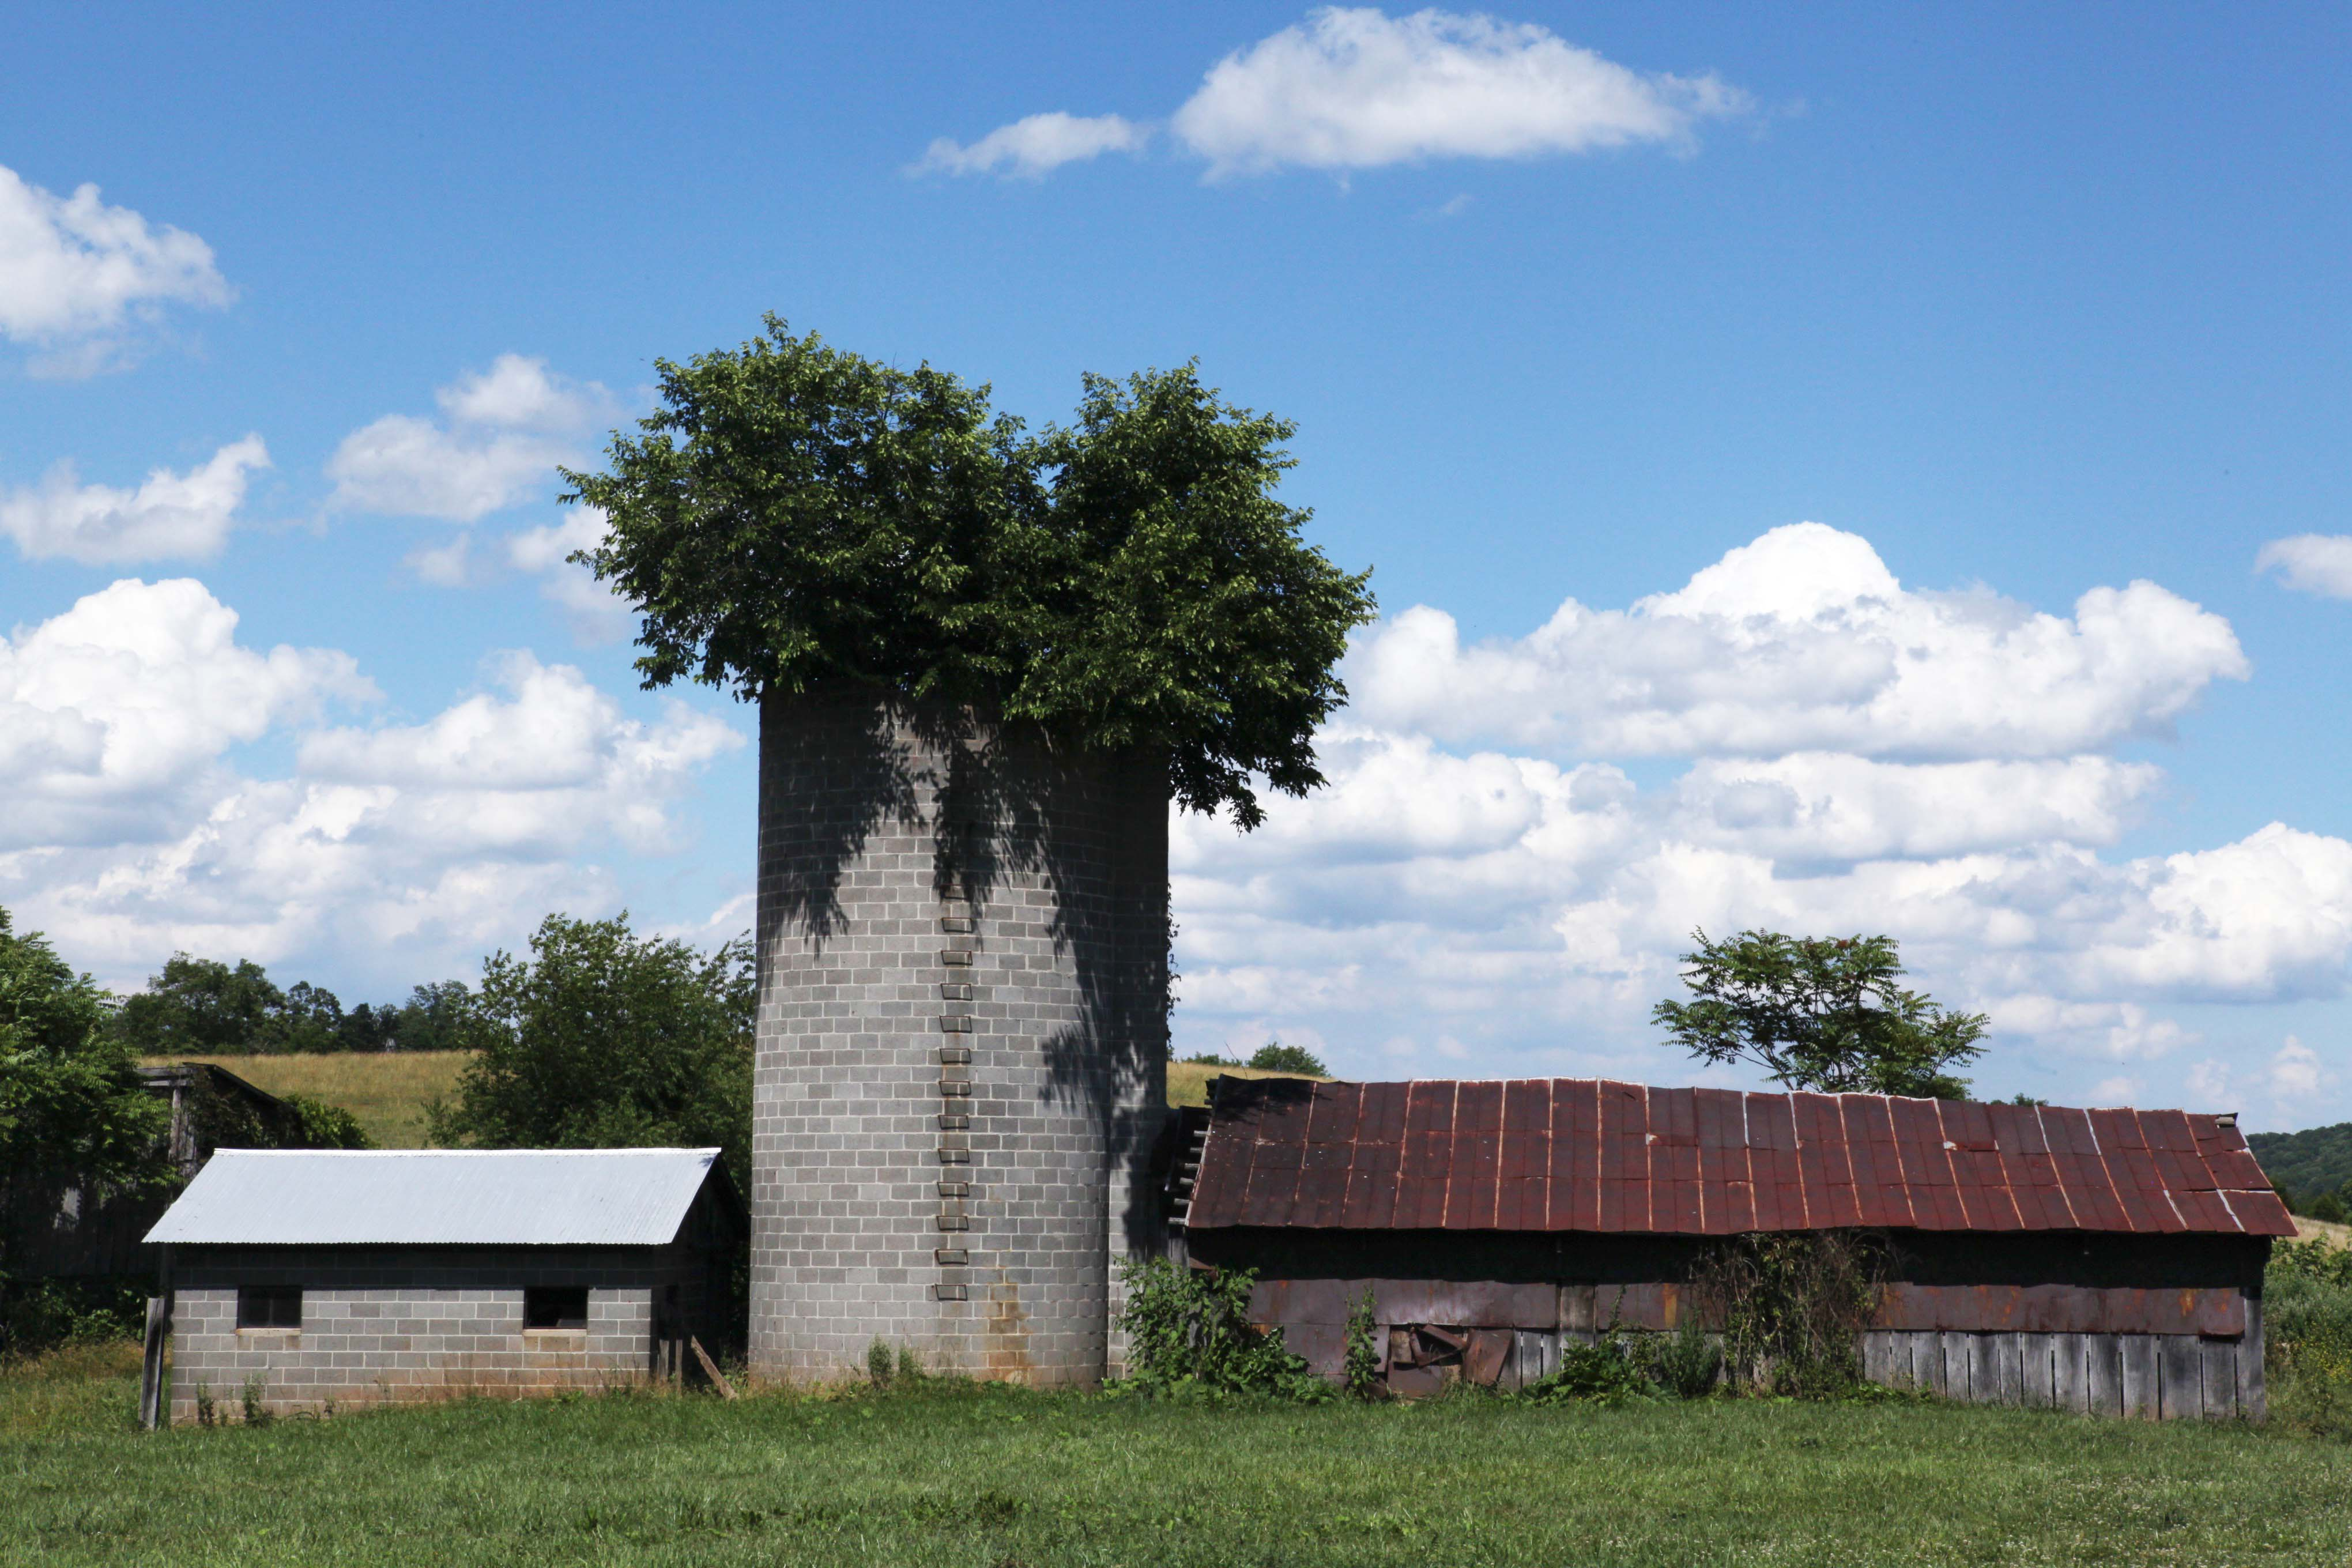 Dairy Parlor, Barn, and Silo